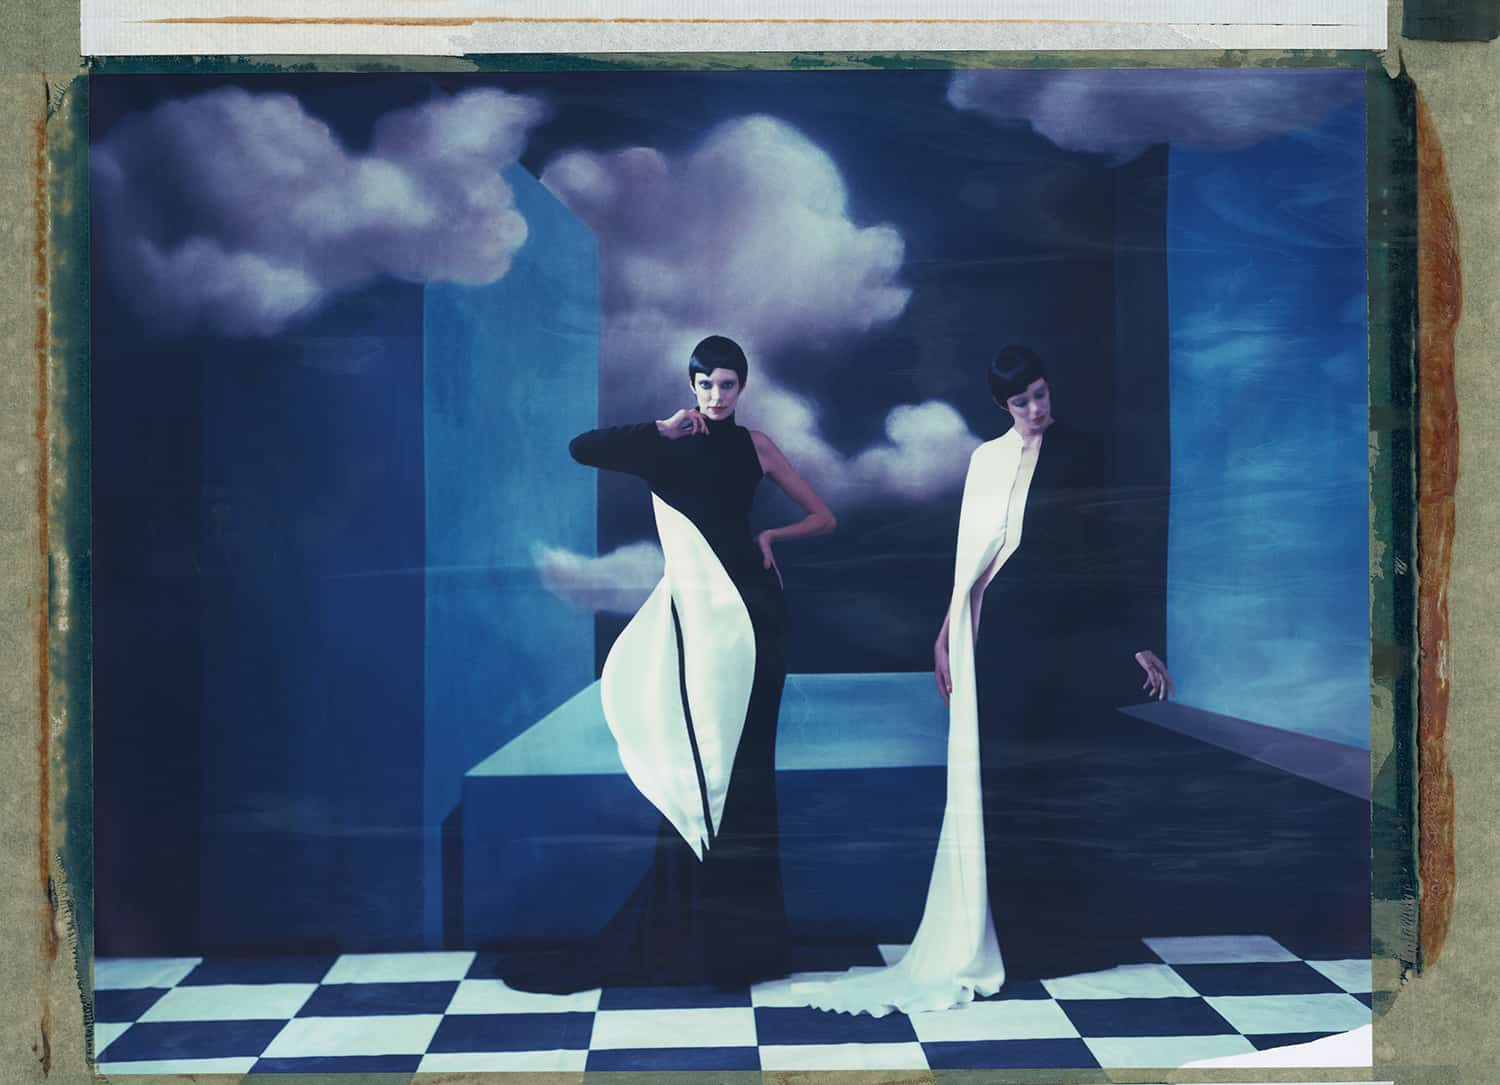 Stephane Rolland, handpainted backdrops Hommage to René Magritte. Cubism, surrealism, twin models